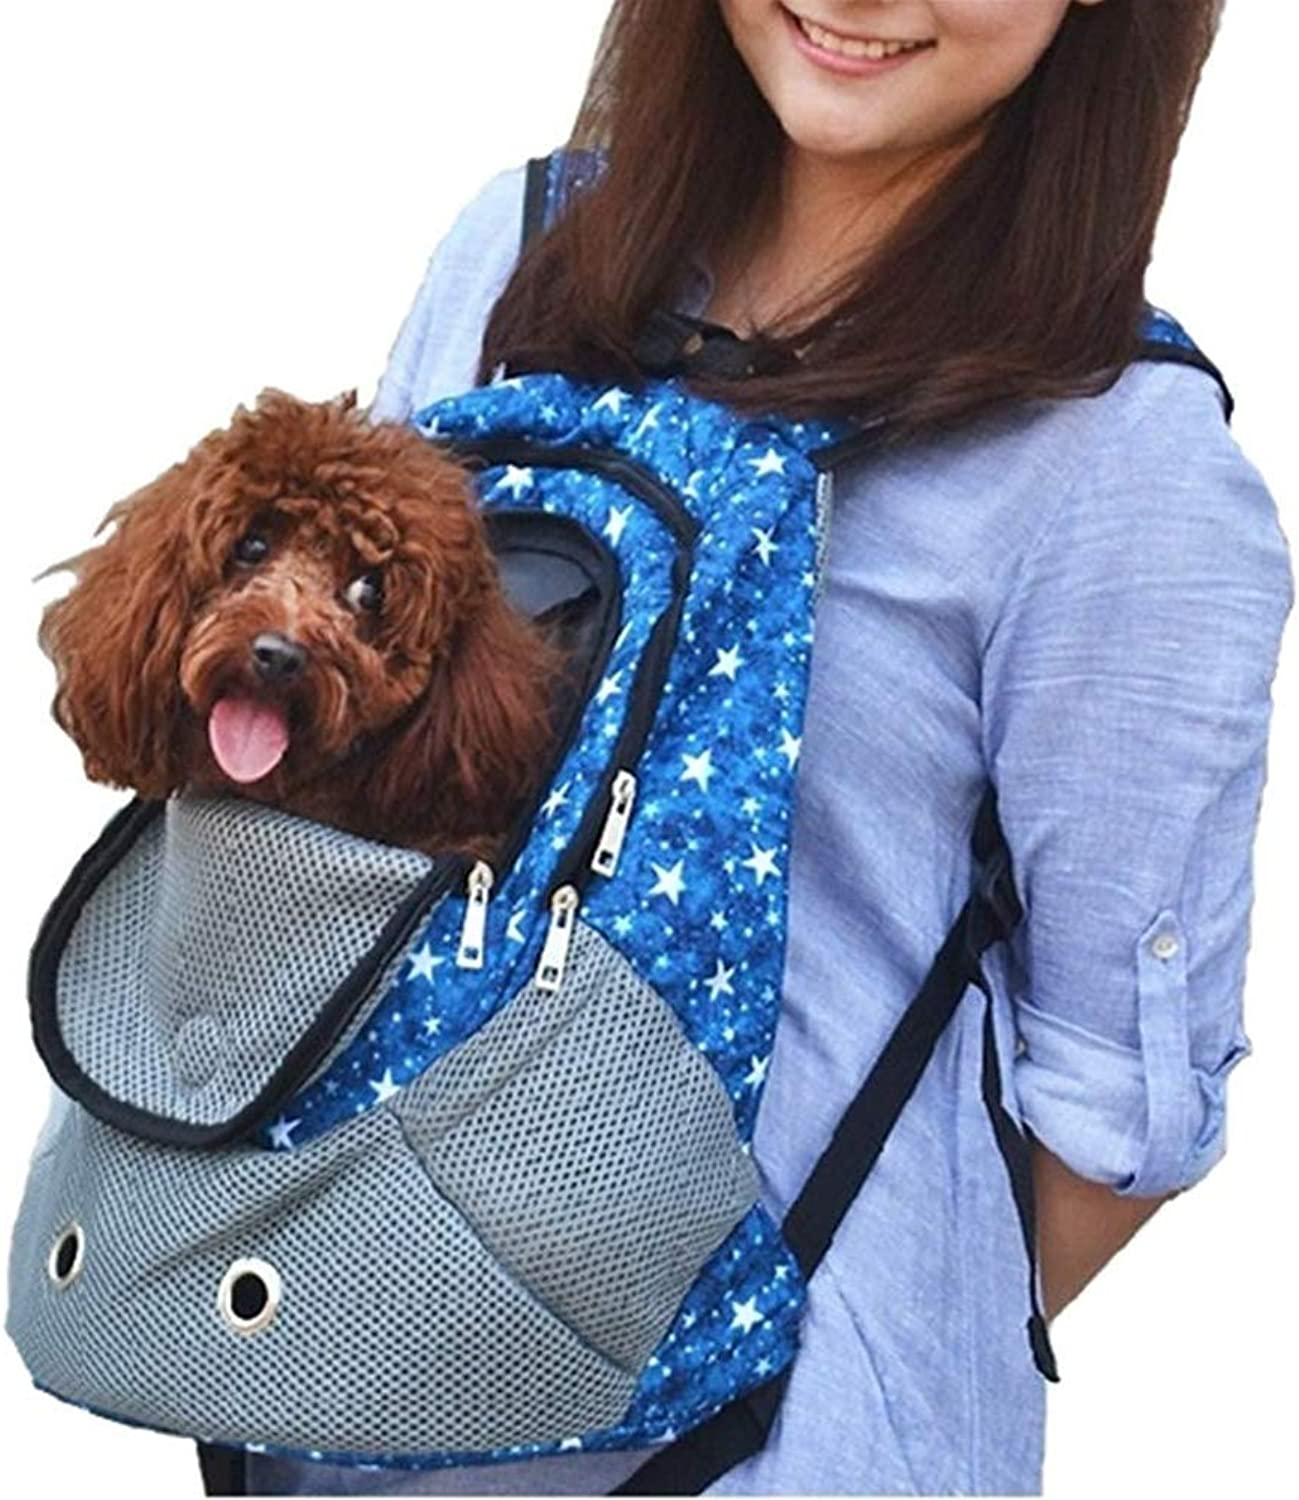 Pet Carrier Bag Travel Backpack Transport Bag Outdoor Breathable mesh Window Foldable for Small Dogs Cats Puppy